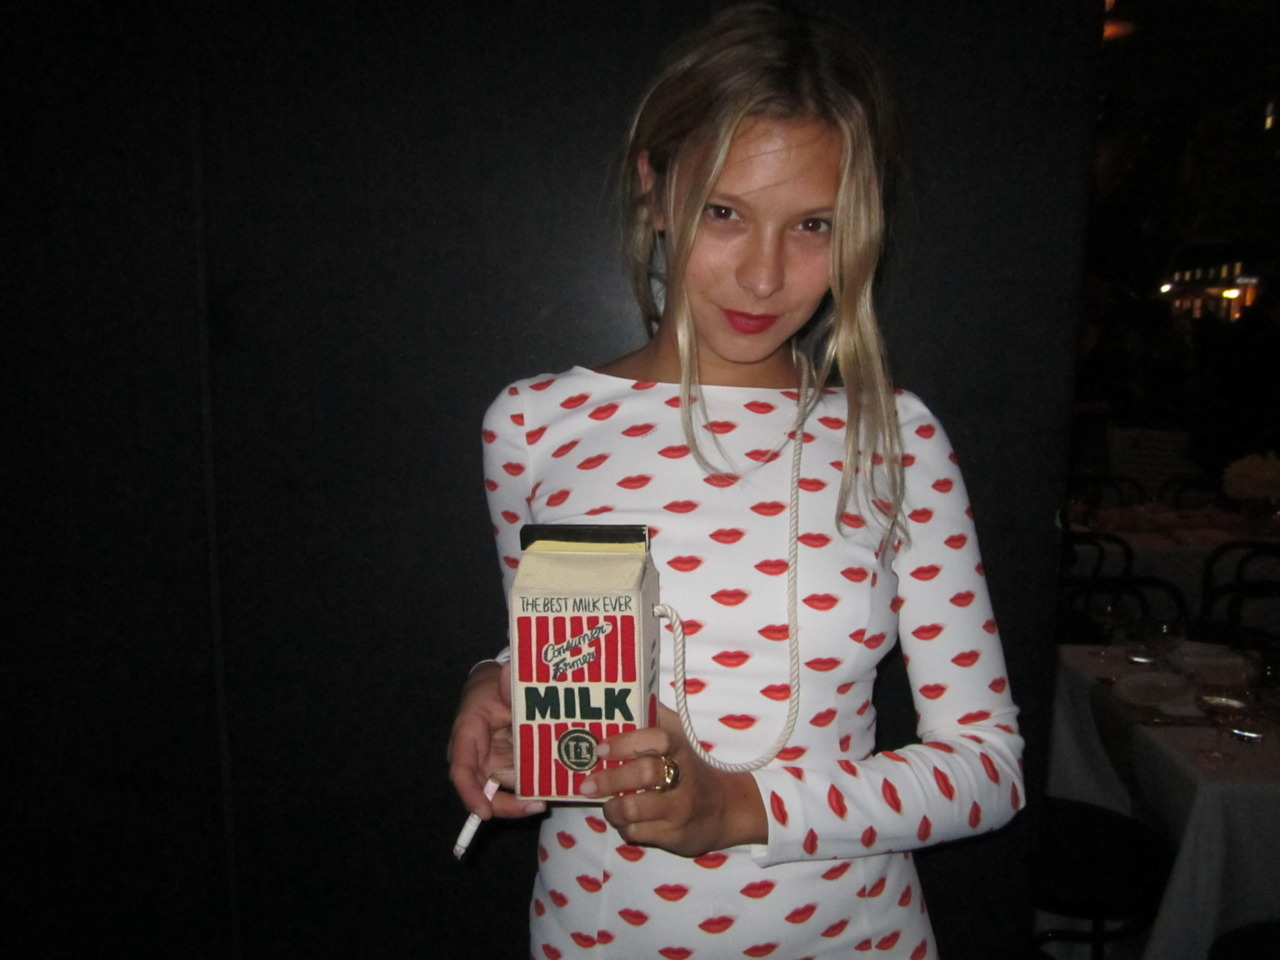 Annabelle Dexter-Jones wearing a Prada dress and a Milk Box bag by Olympia Le-Tan at the Standard Grill for André's L'Officel Hommes dinner in New York.